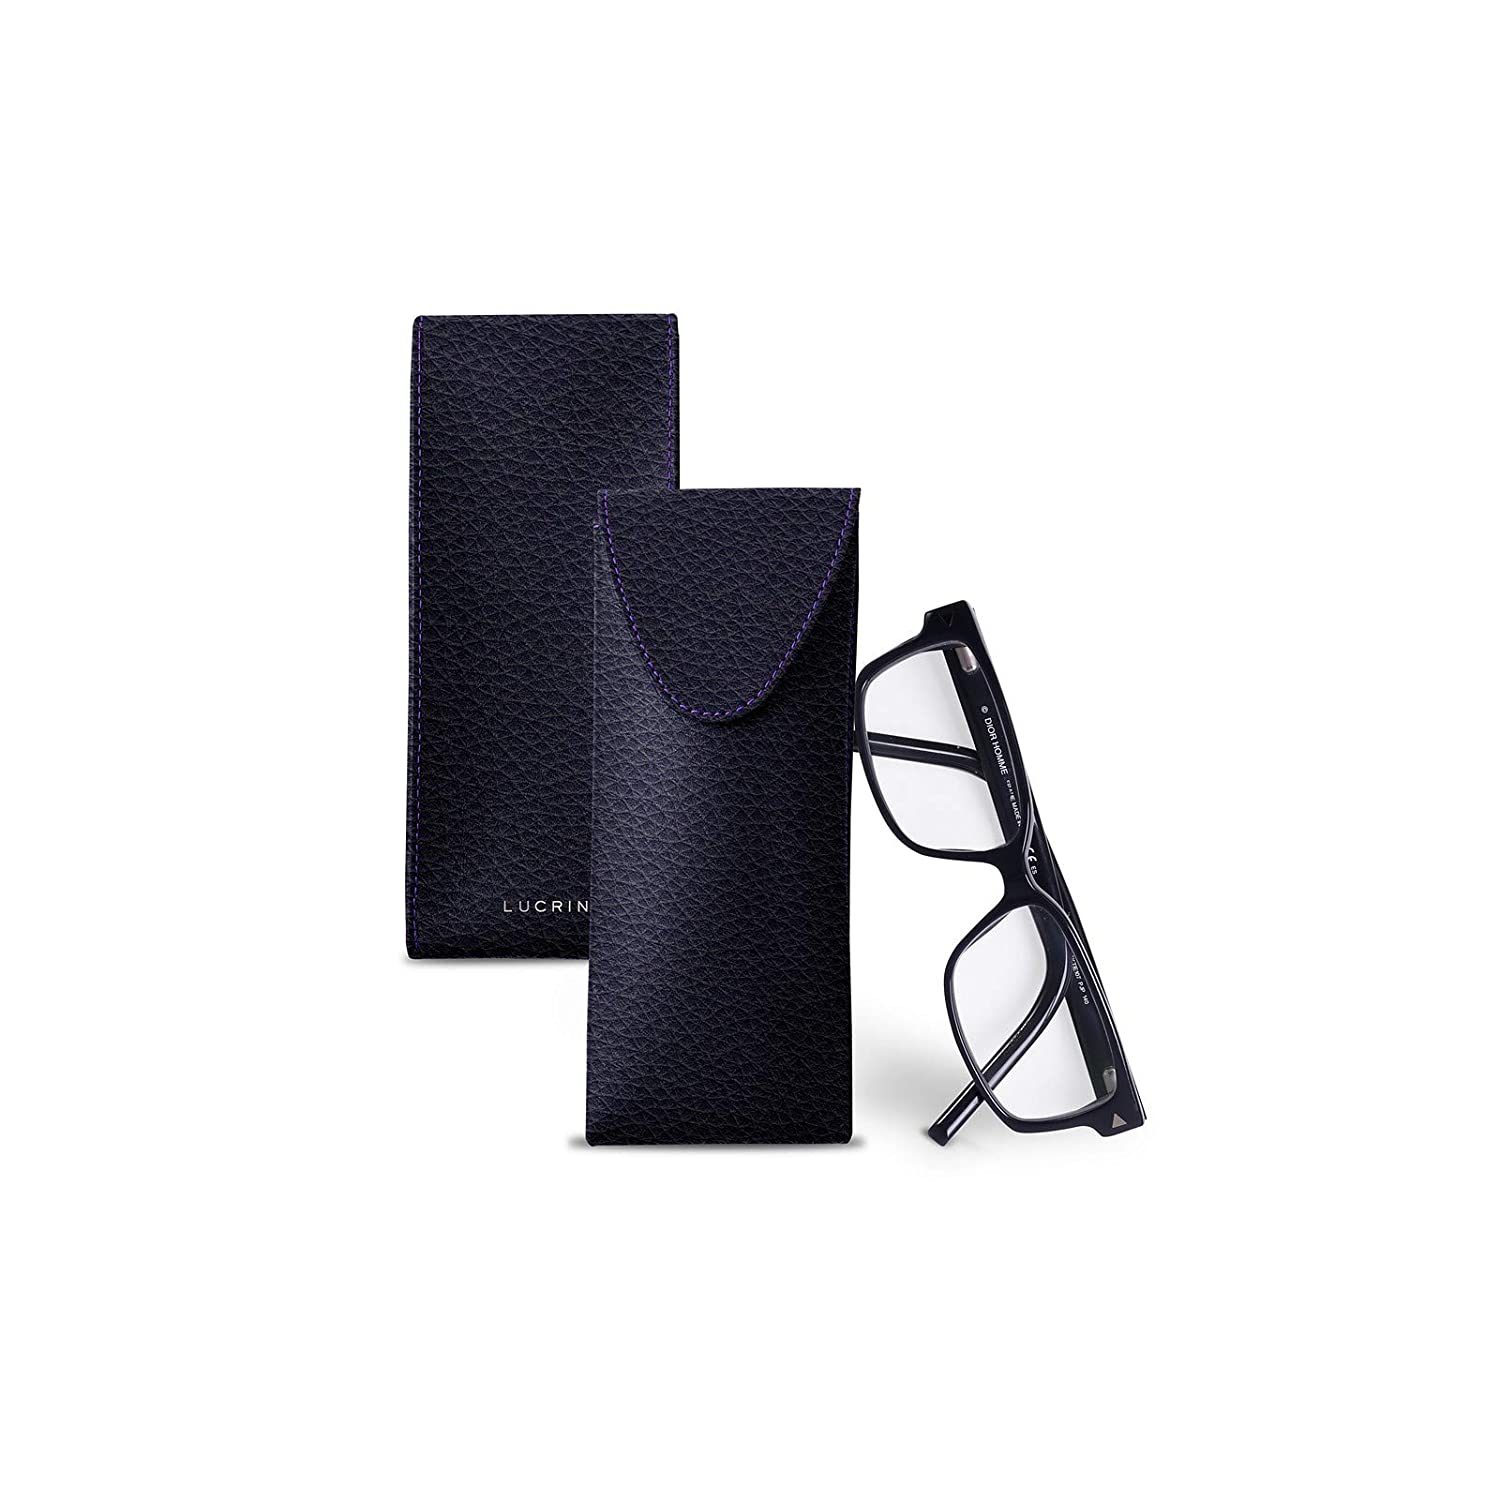 Case for glasses Lucrin Granulated Leather